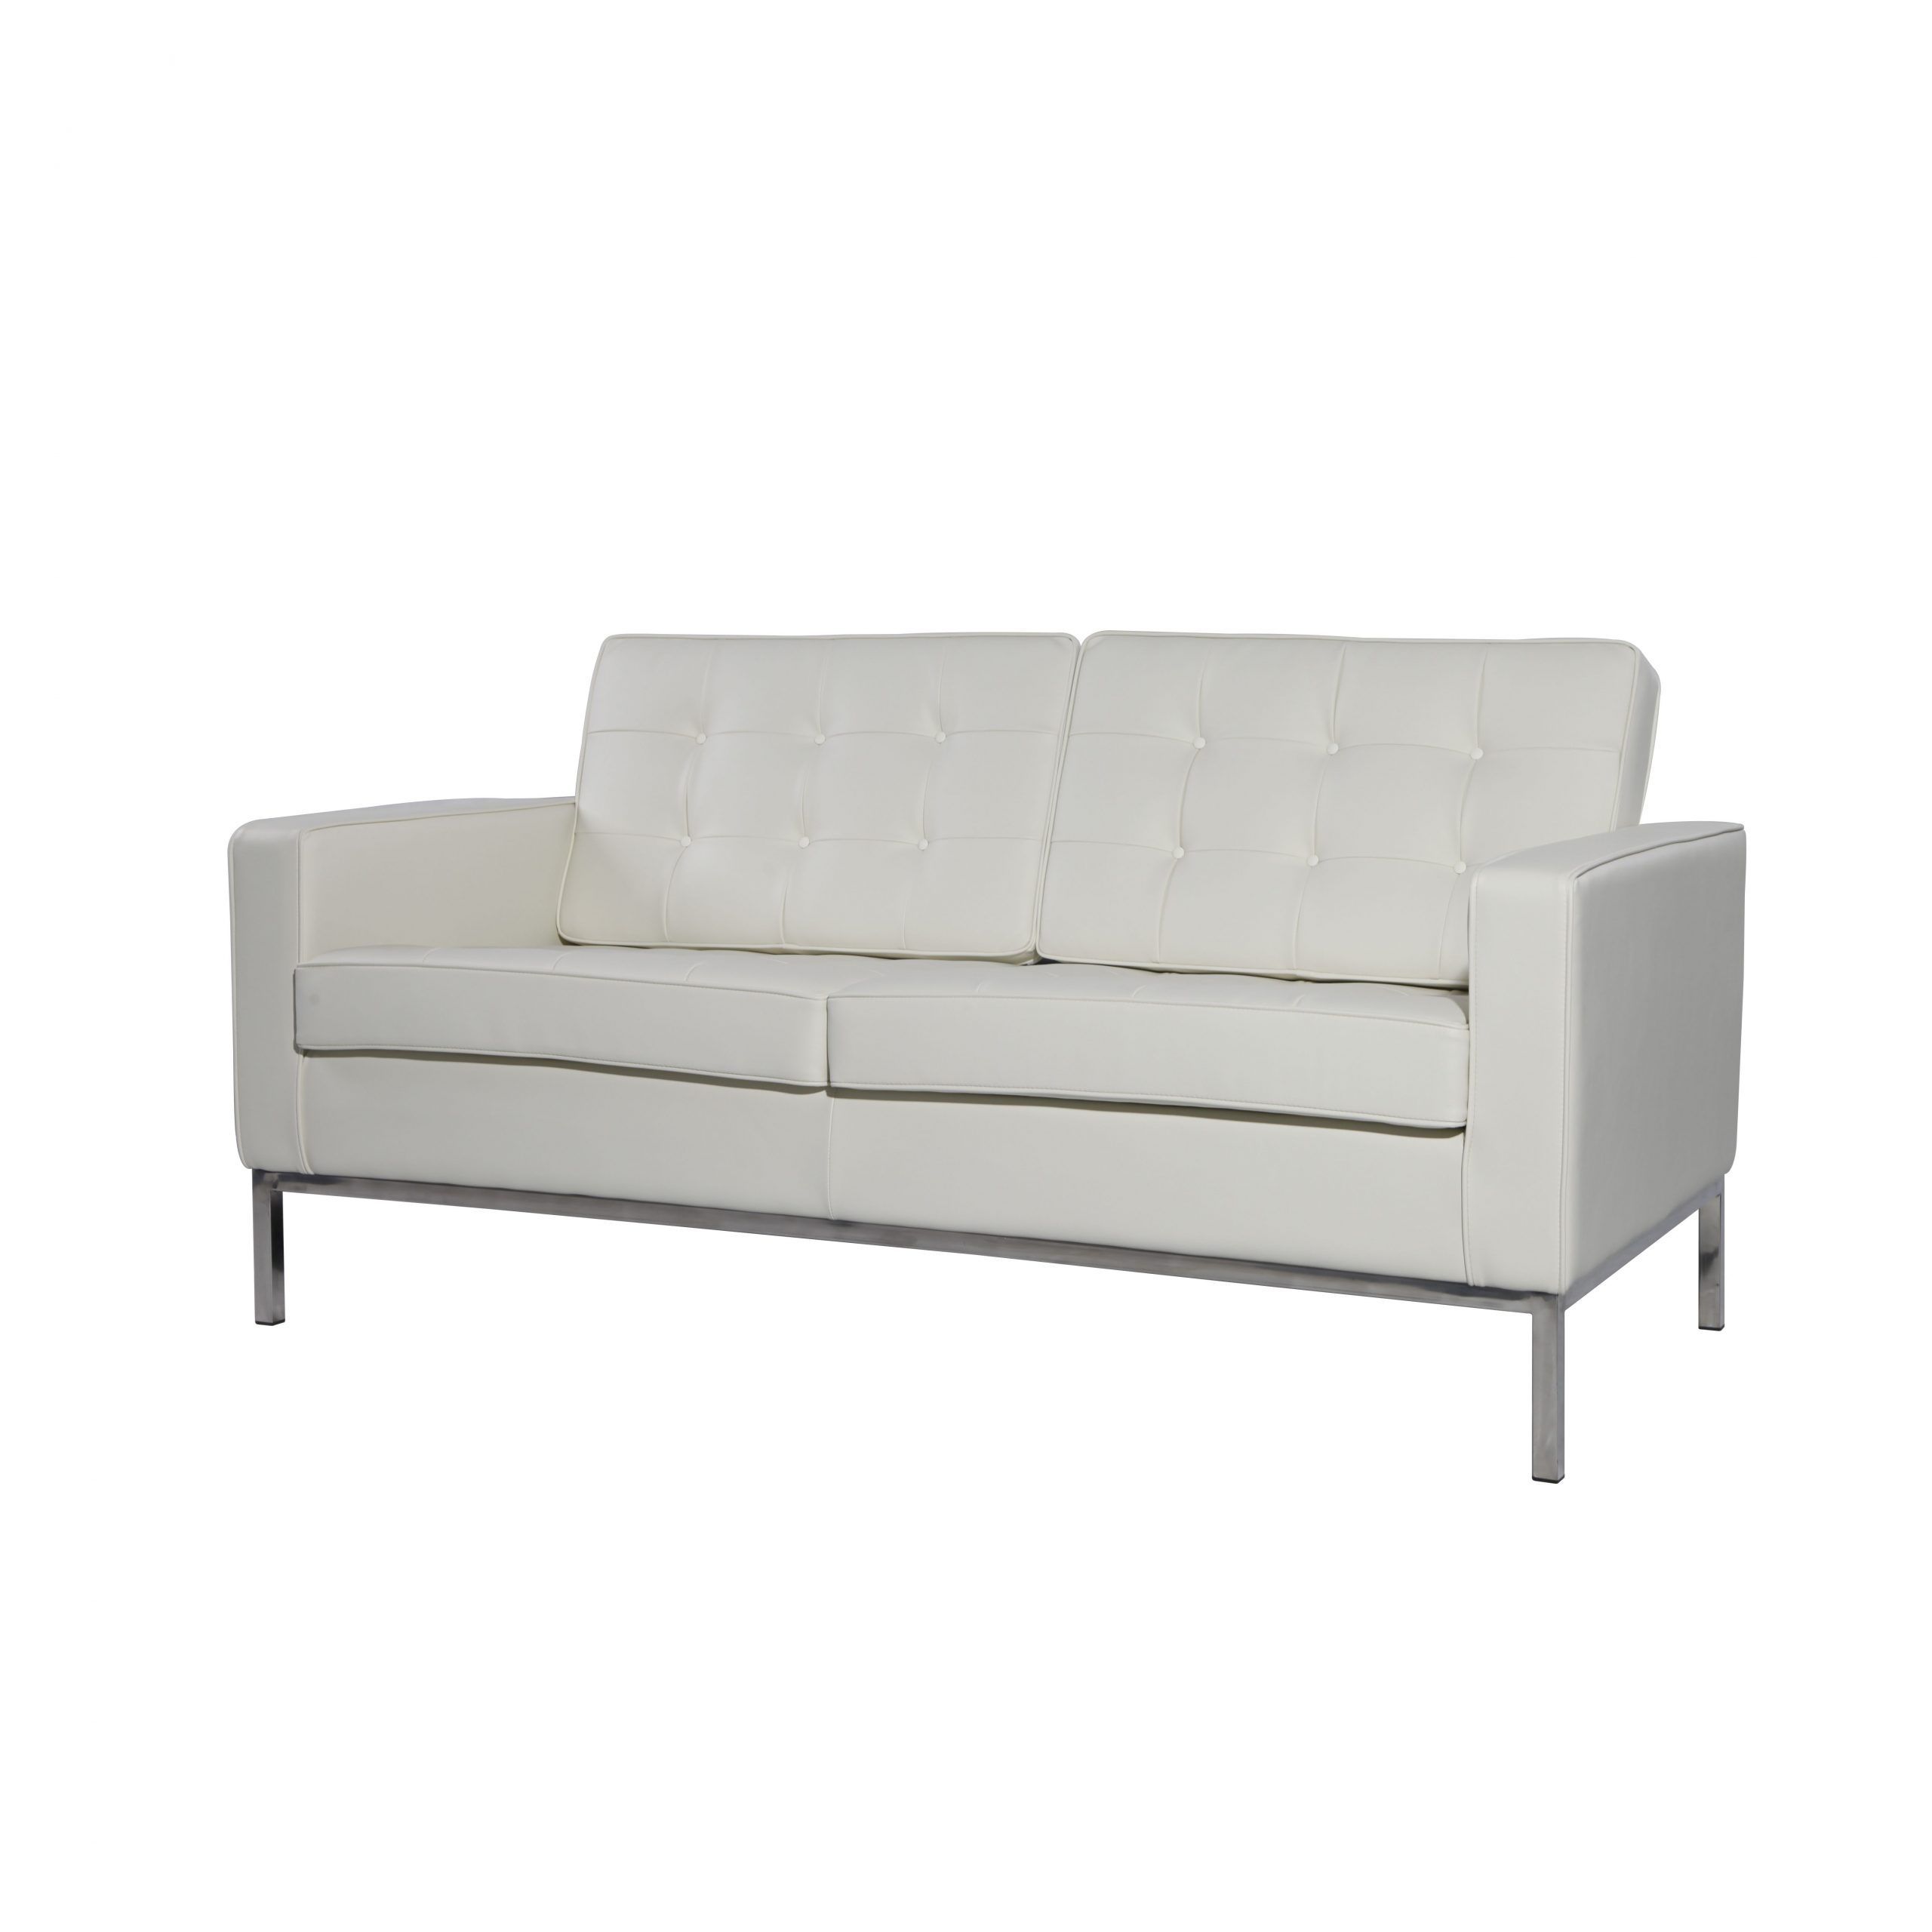 This Classic Replica Florence Knoll 2 Seater Sofa – White With Regard To Florence Leather Sofas (View 10 of 15)